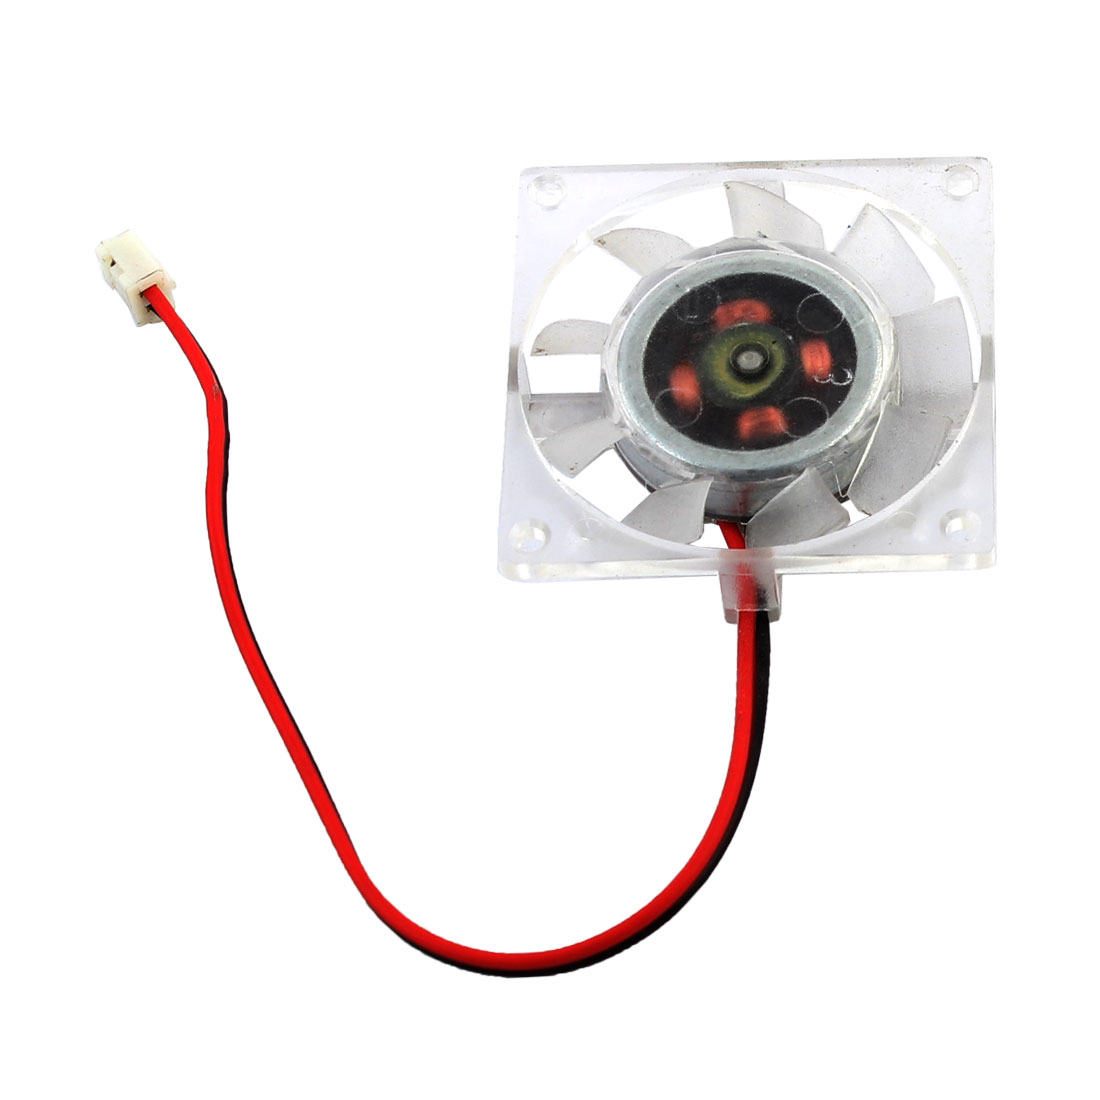 40mmx10mm DC 12V Cooling Fan Cooler Clear for PC Computer